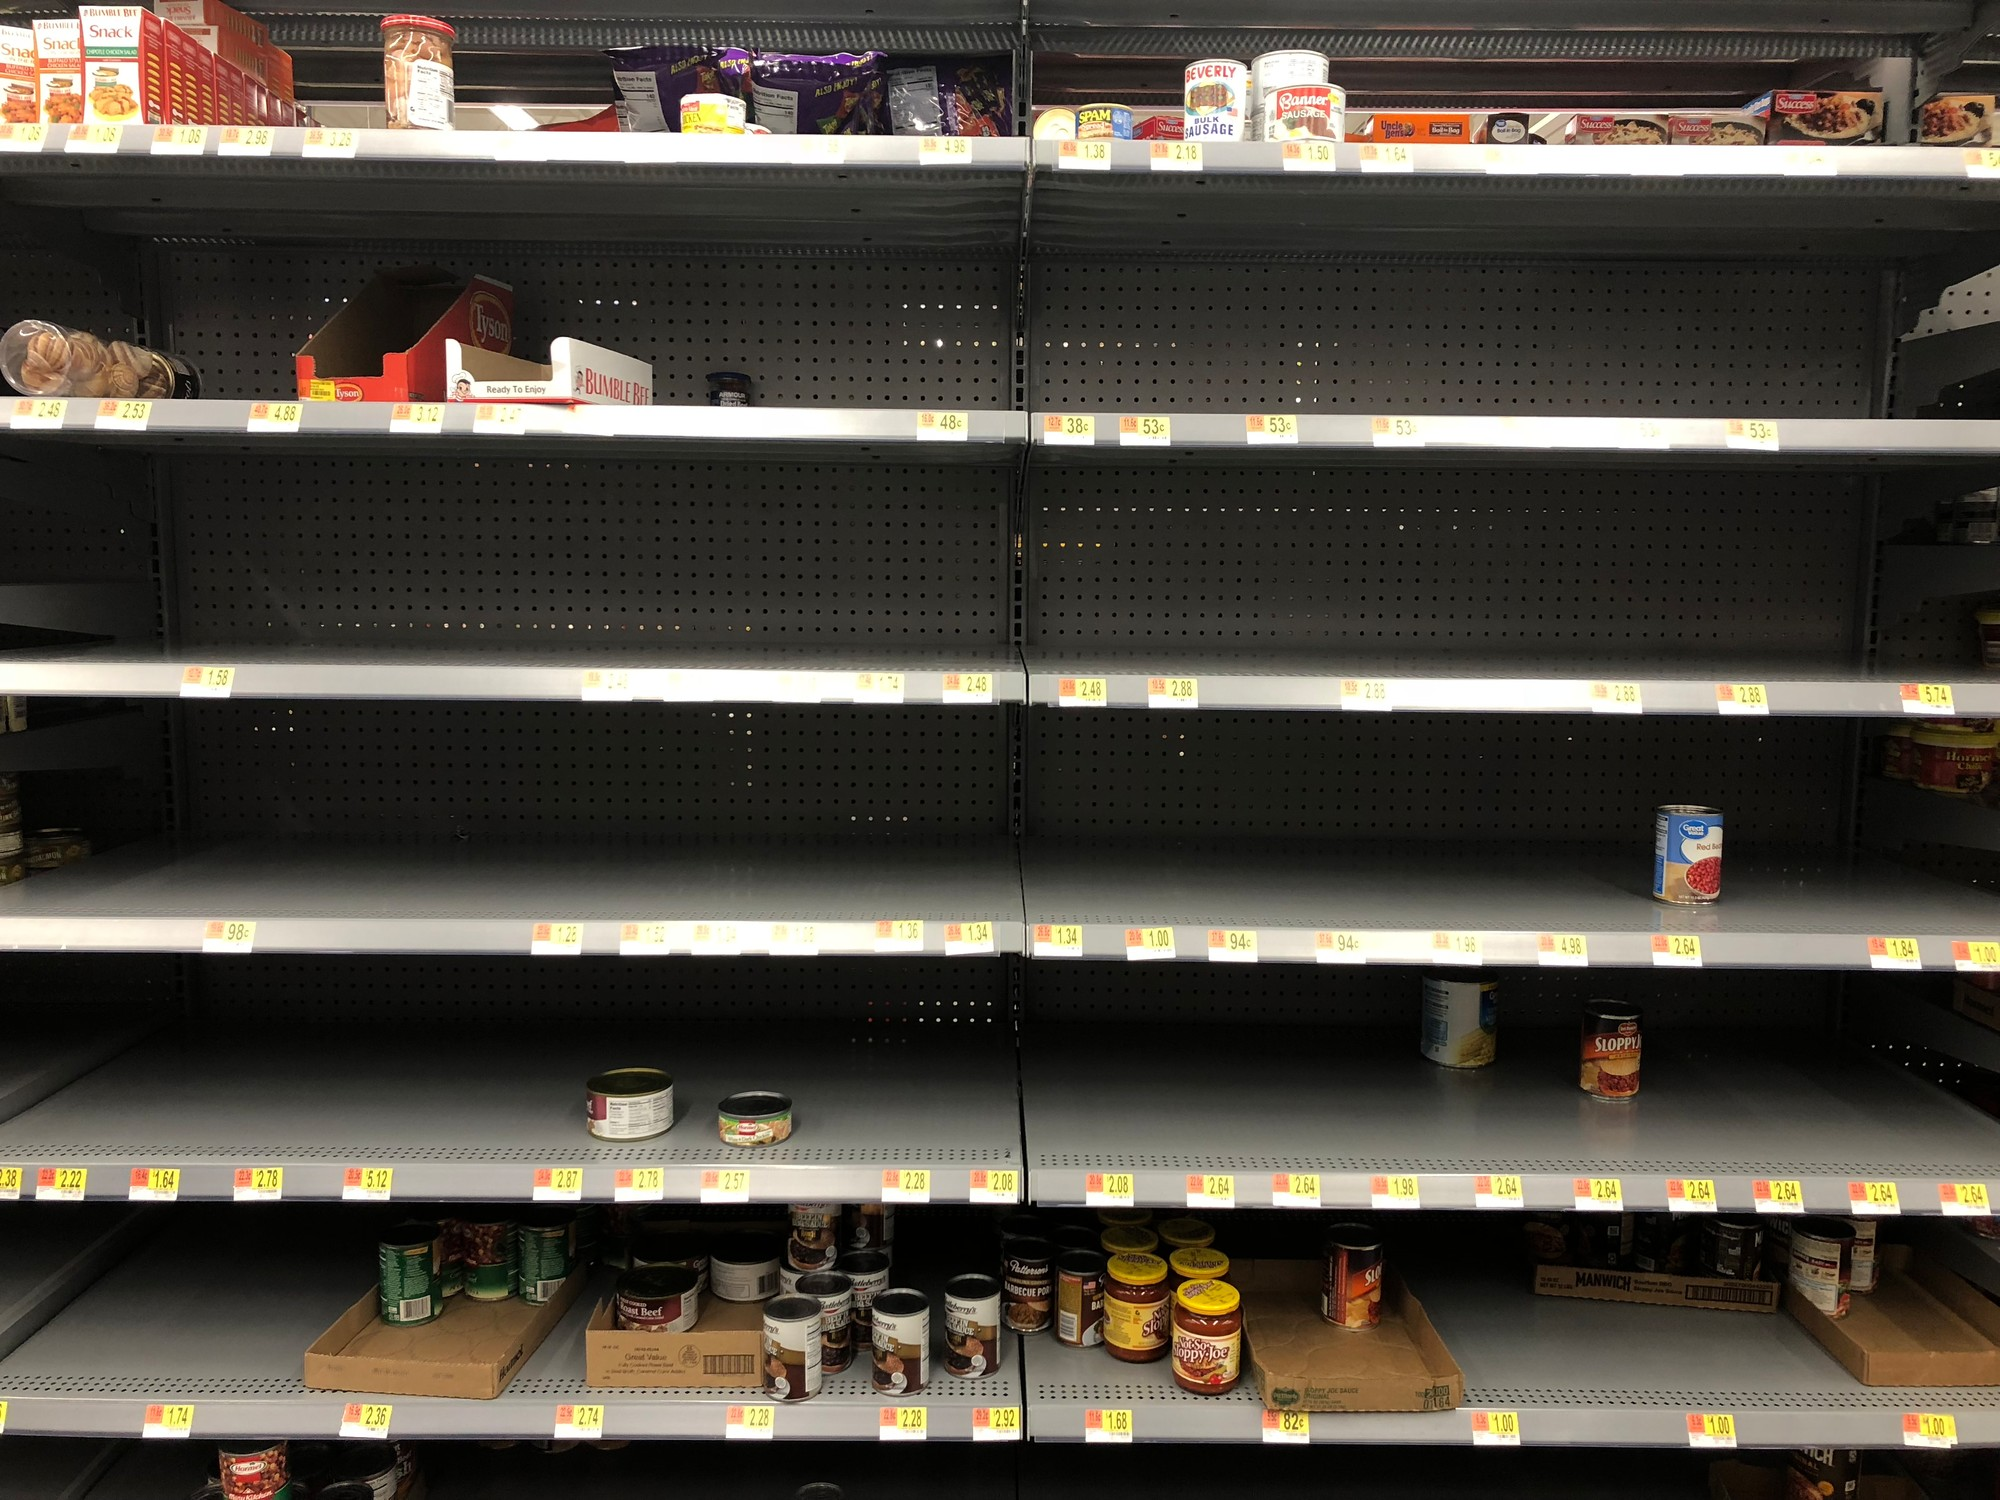 Canned beans, vegetables and chili shelves are decimated Tuesday night at the Walmart Neighborhood Market on Pinewood Road as residents prepare for what is expected to be days without power due to Hurricane Florence.